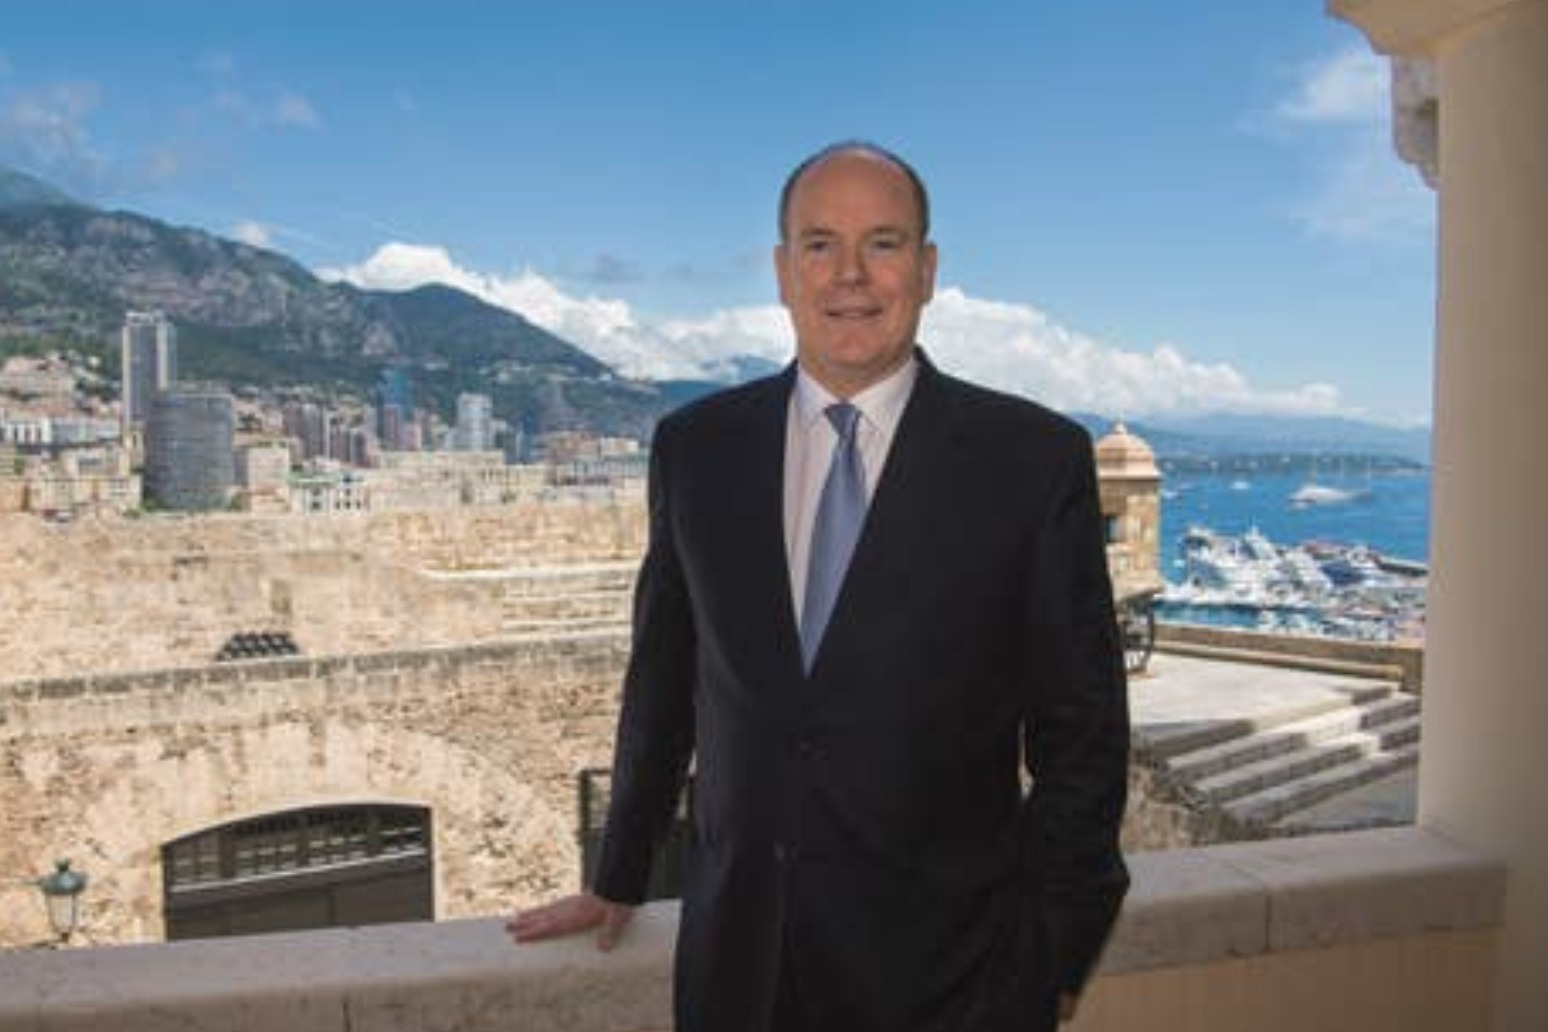 Prince Albert of Monaco slams Harry and Meghan's 'inappropriate' Oprah interview